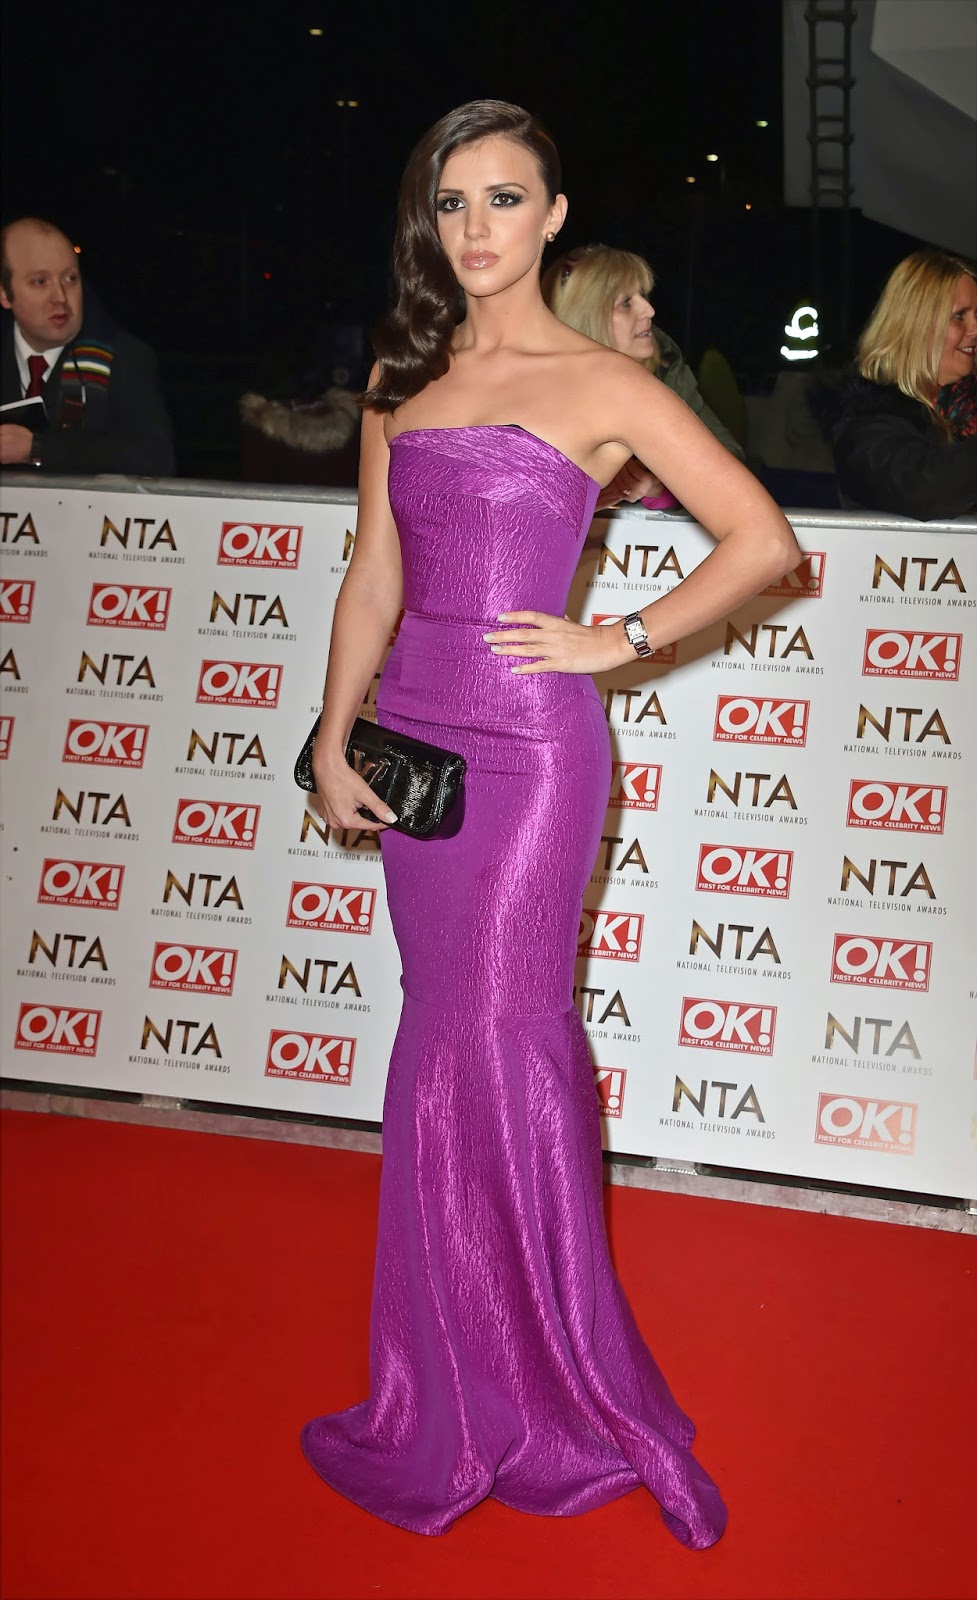 Model: Lucy Mecklenburgh - National Television Awards in London